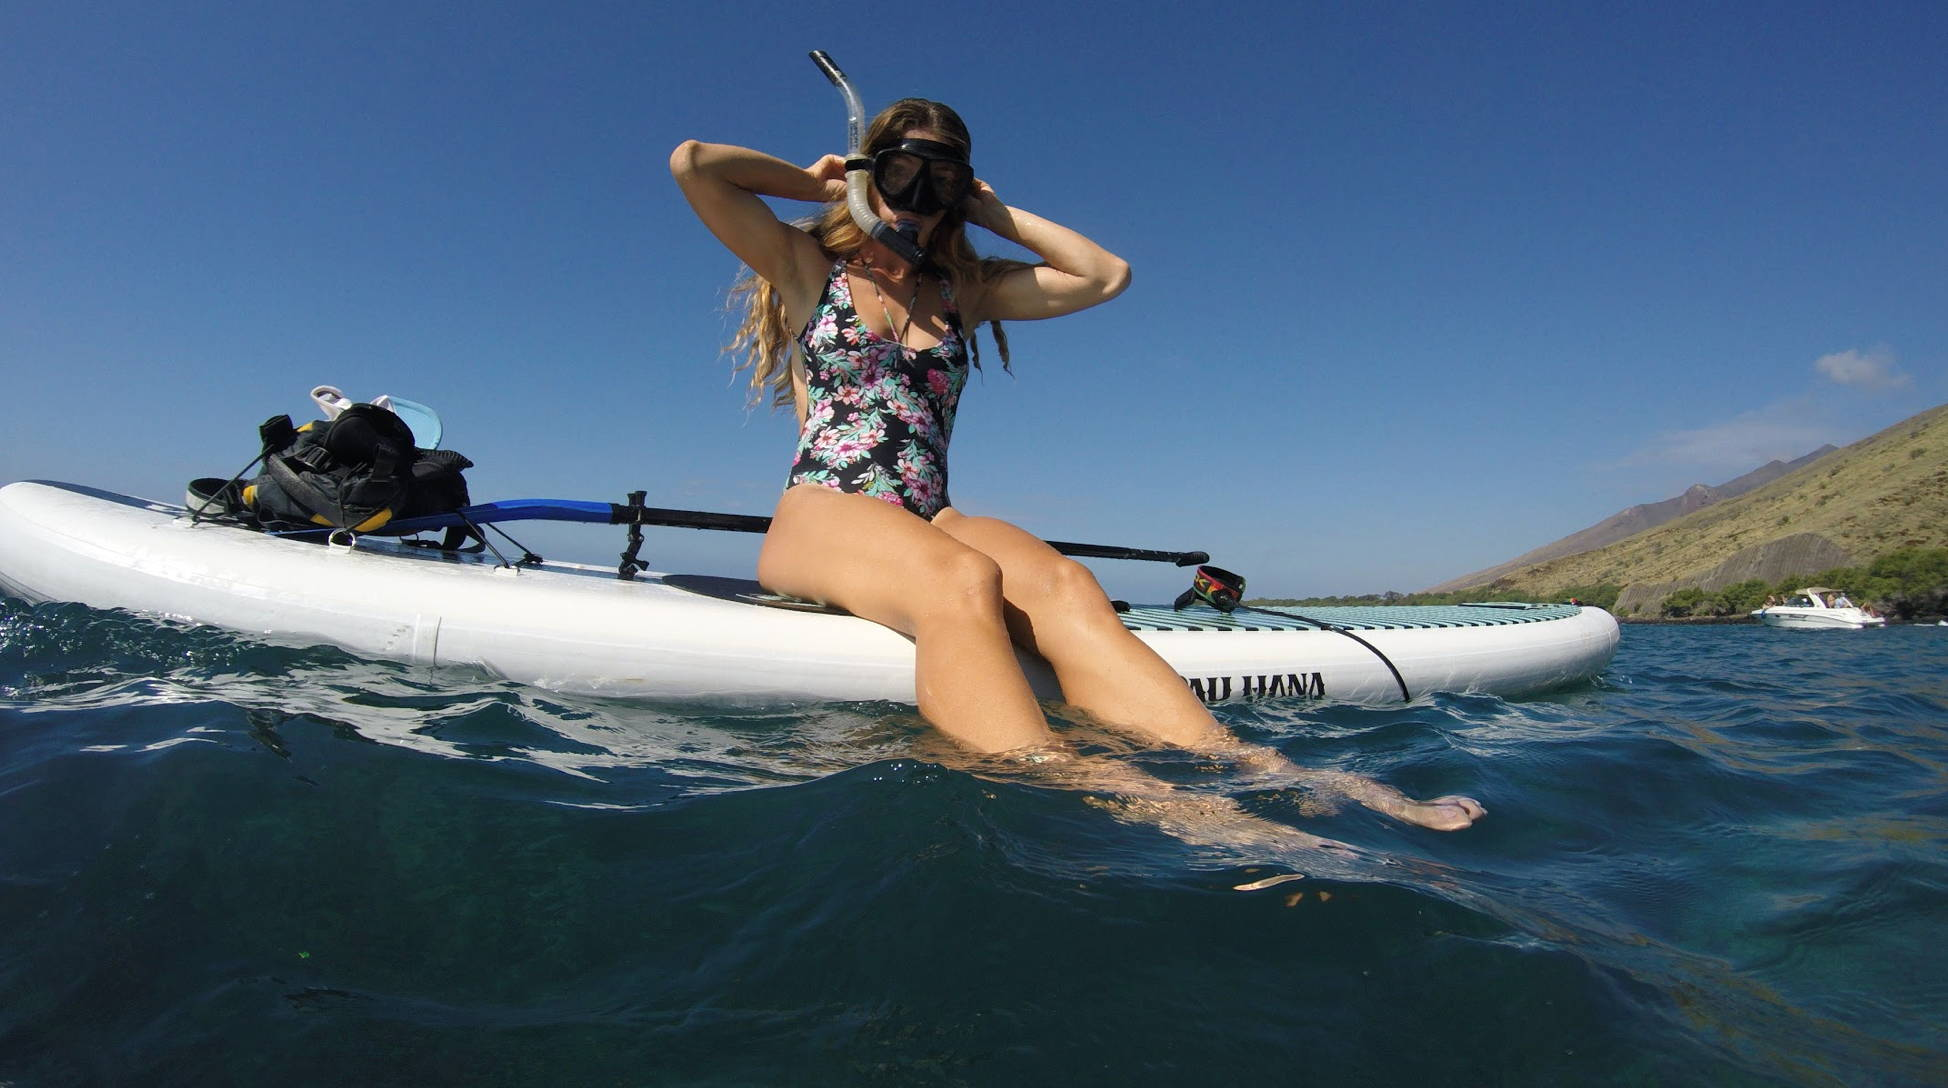 Snorkeling in Hawaii on a SUP